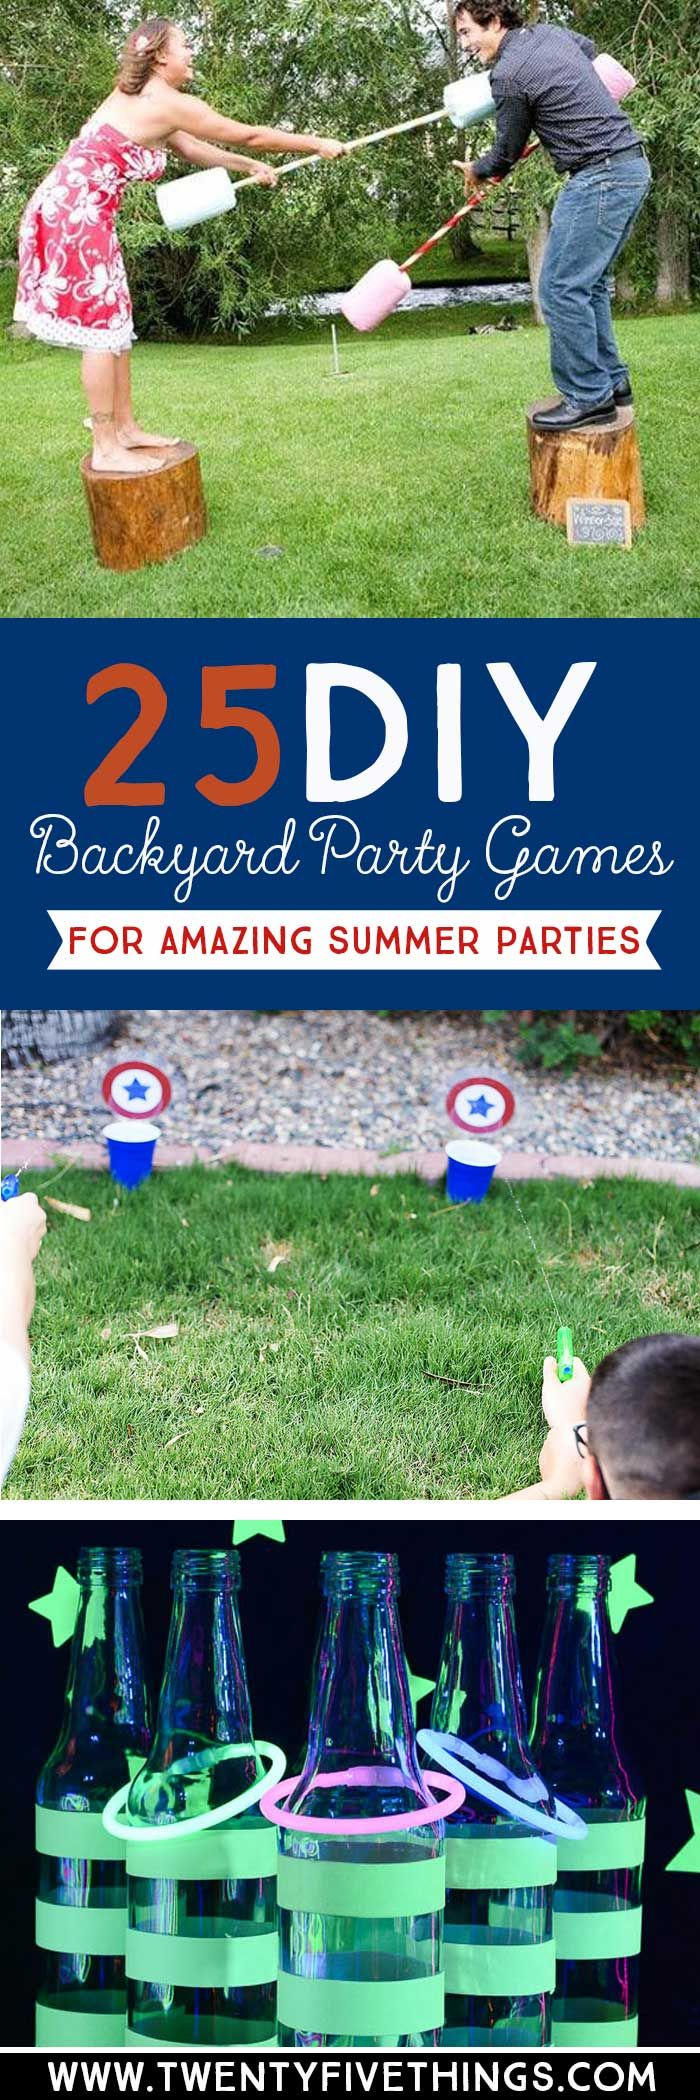 25 DIY Backyard Party Games for the Best Summer Party Ever | Games Backyard Family Party Ideas on sweet 16 backyard party ideas, teenage backyard party ideas, western backyard party ideas, first birthday backyard party ideas, adult backyard party ideas, fall backyard party ideas, toddler backyard party ideas, easy backyard party ideas, winter backyard party ideas, end of school year backyard party ideas,